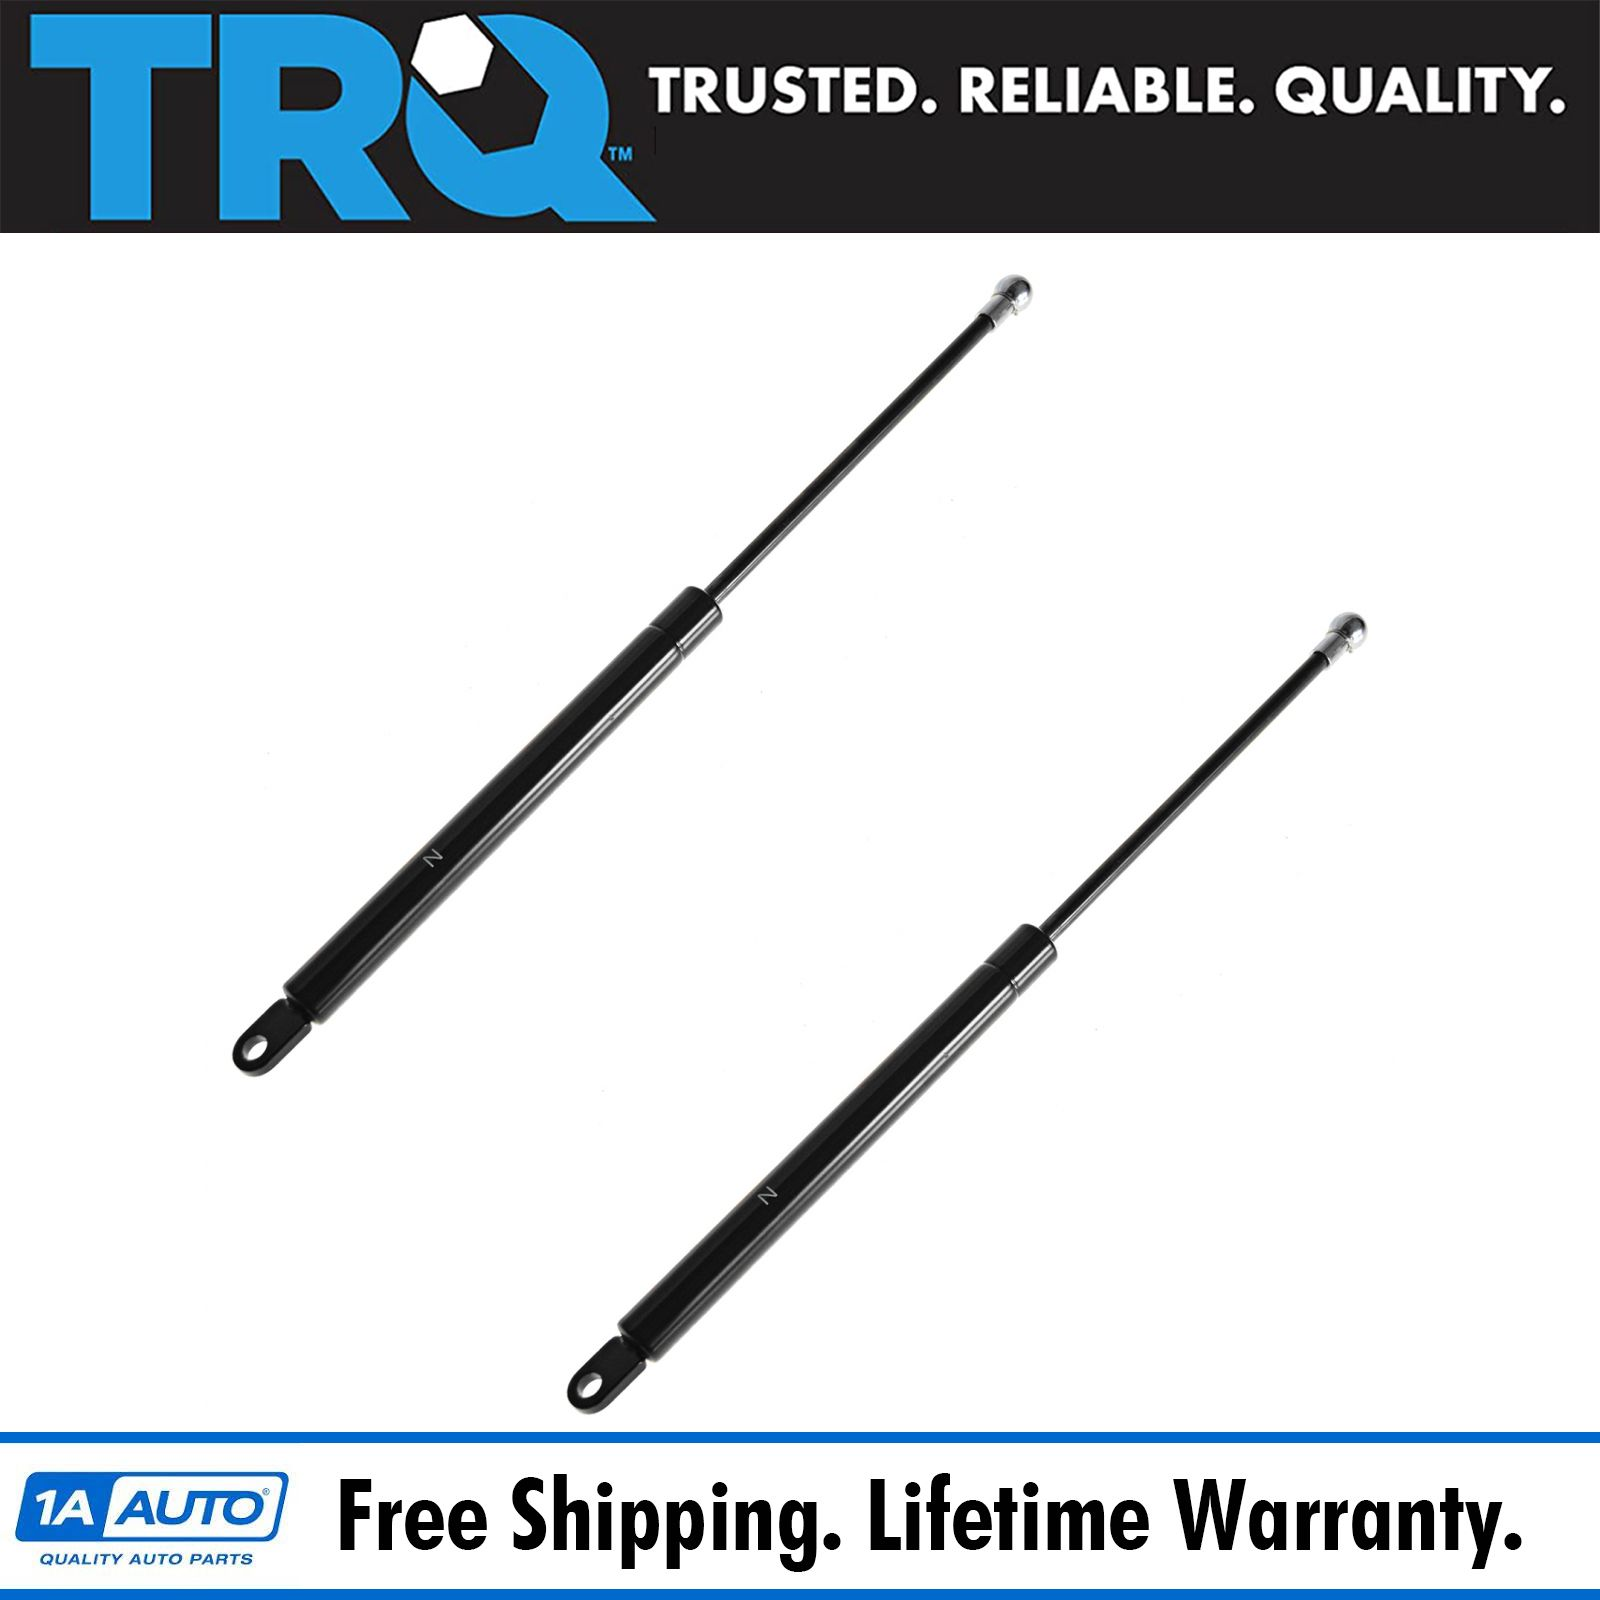 Front Hood Lift Support Strut Left /& Right Pair Set of 2 NEW for Porsche 924 944